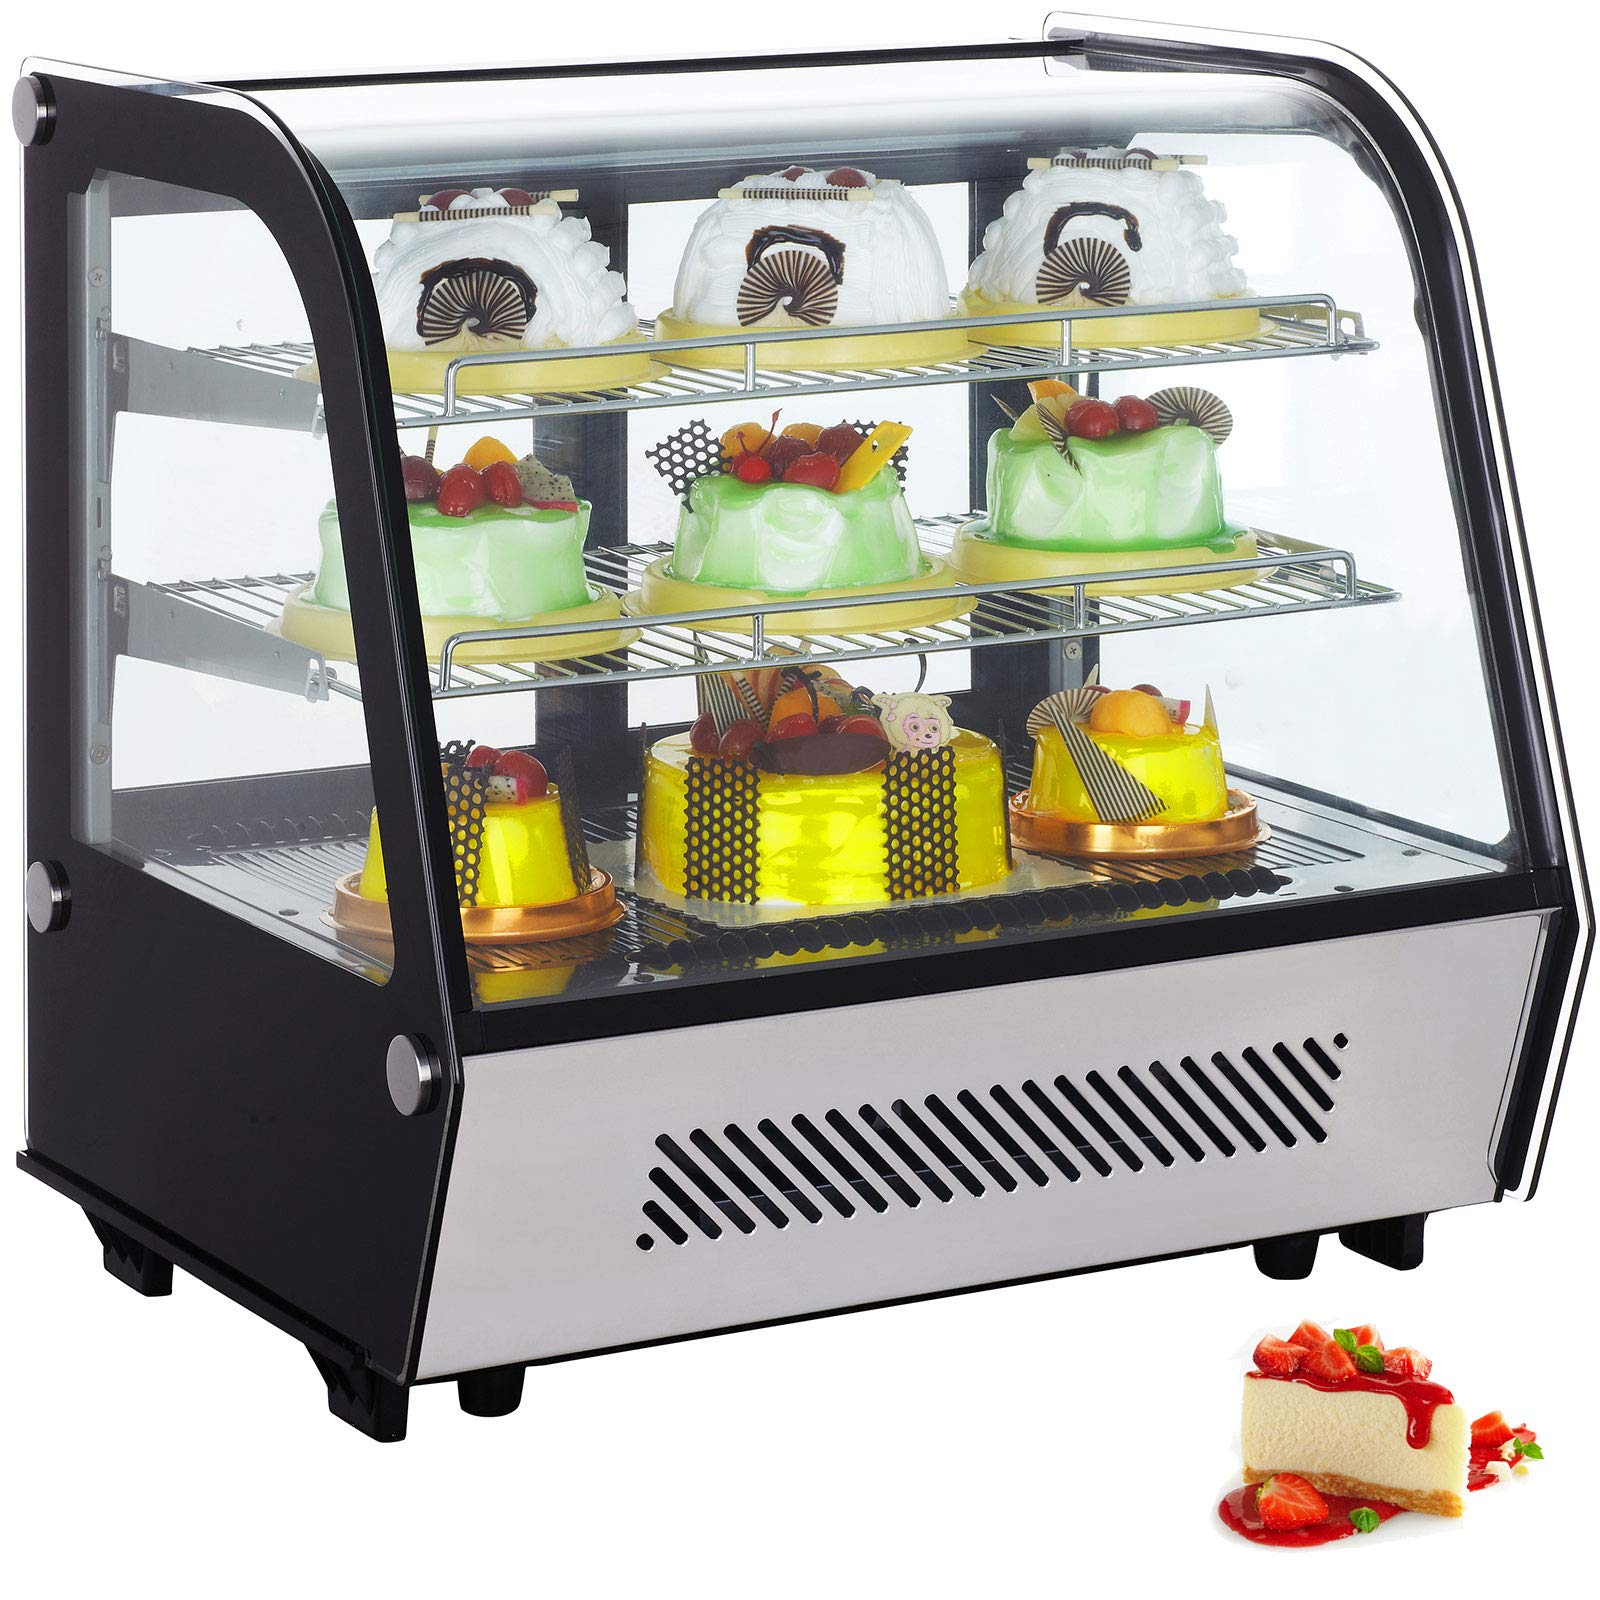 VBENLEM 4.25 cu.ft. Commercial Countertop Refrigerator Silver 120L Stainless Steel Bakery Dairy Display Cooler Case with Automatic Defrost LED Lighting Suit for Cake Roaster Shop Cafe Use